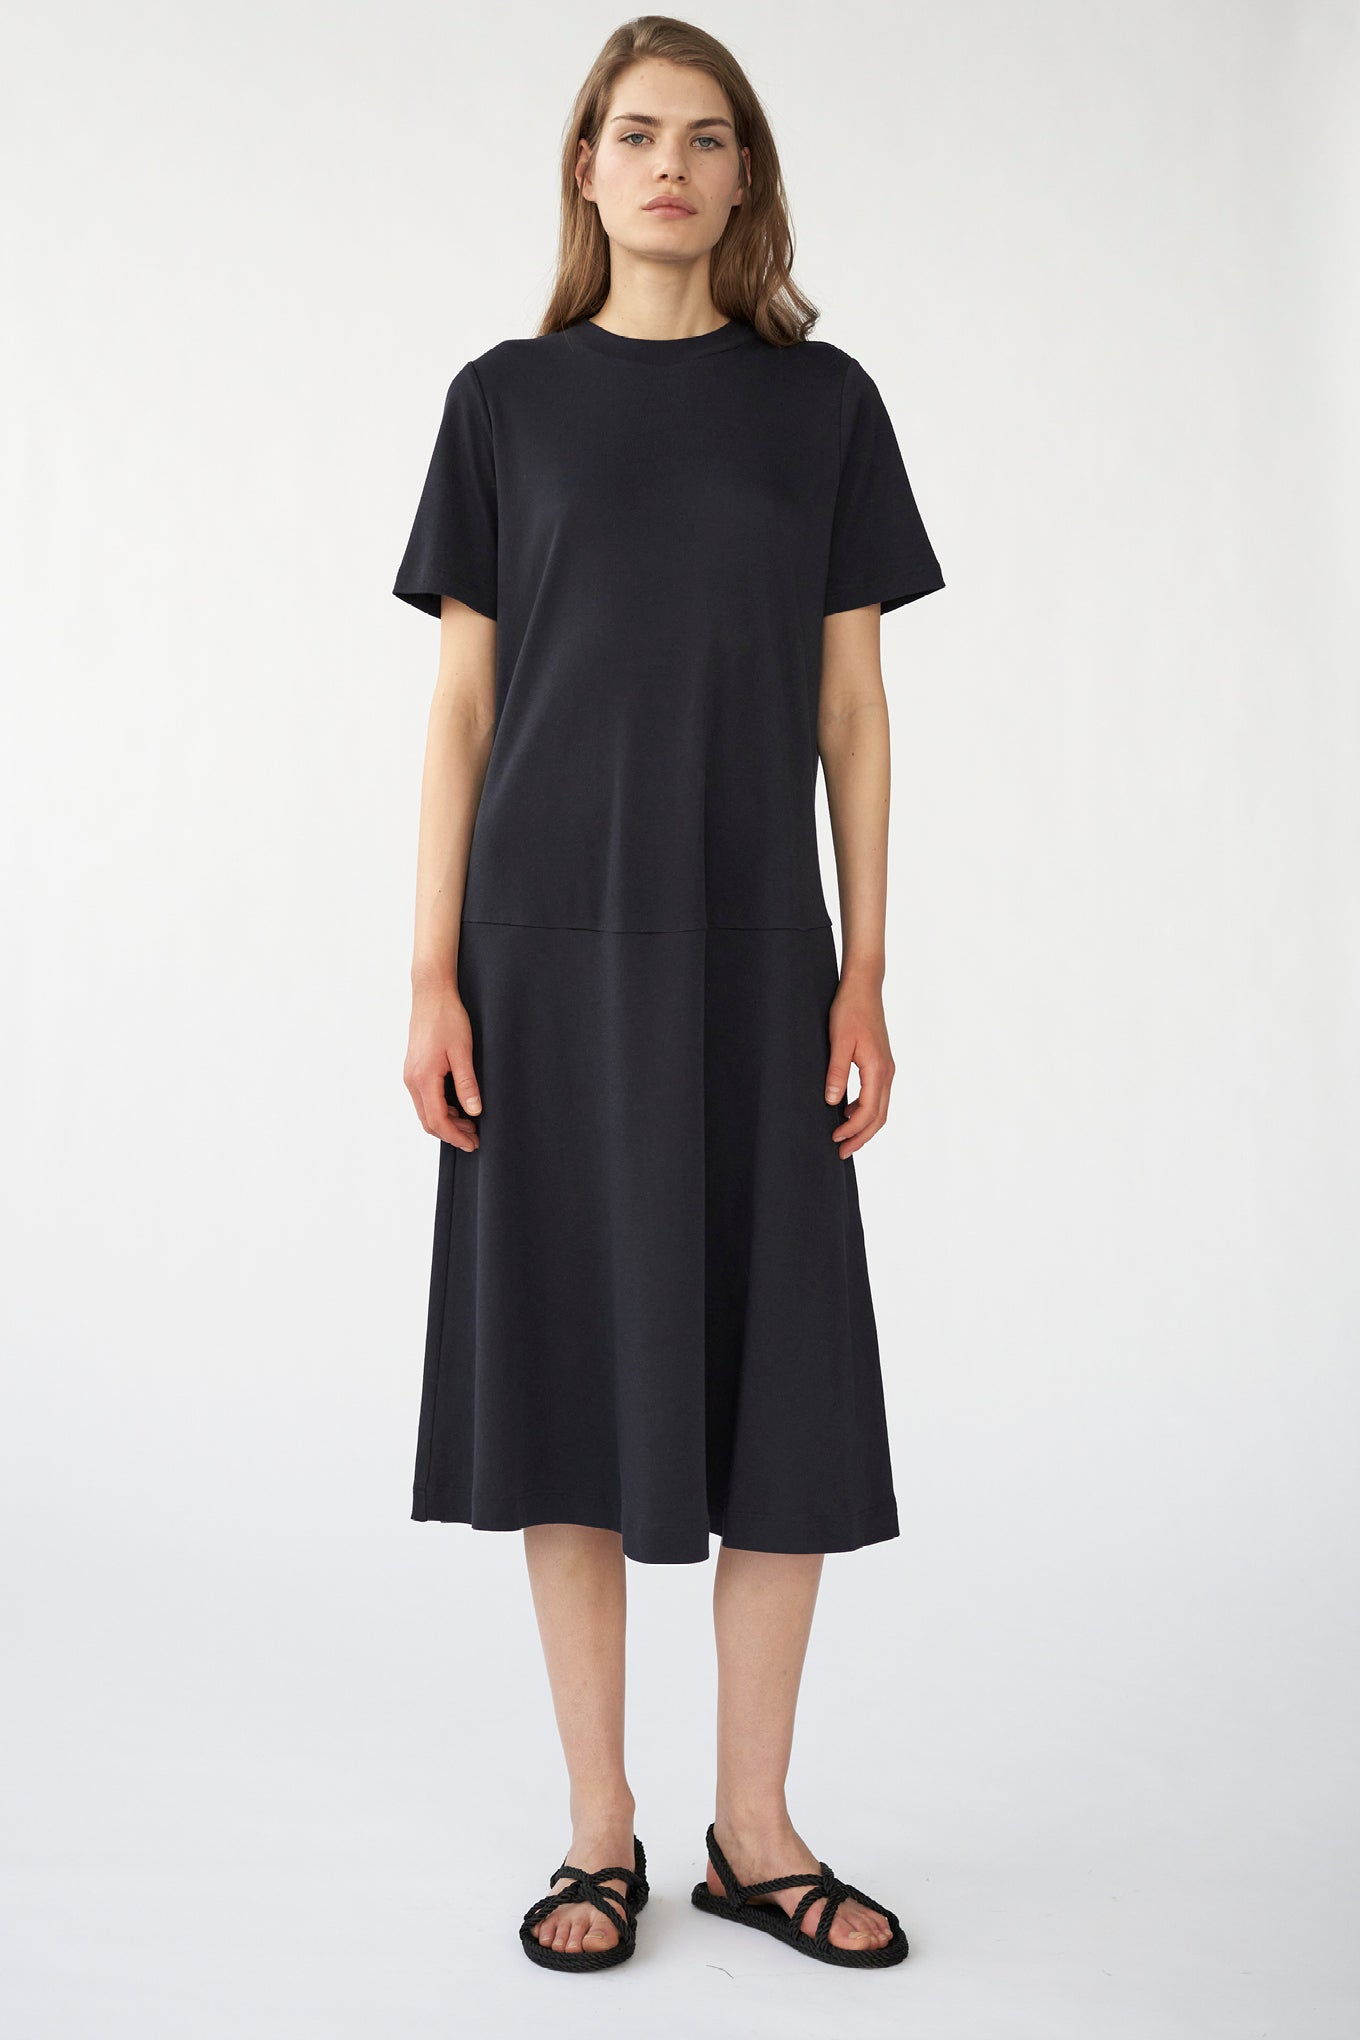 HOLDEN JERSEY DRESS - NAVY - SILK/COTTON JERSEY